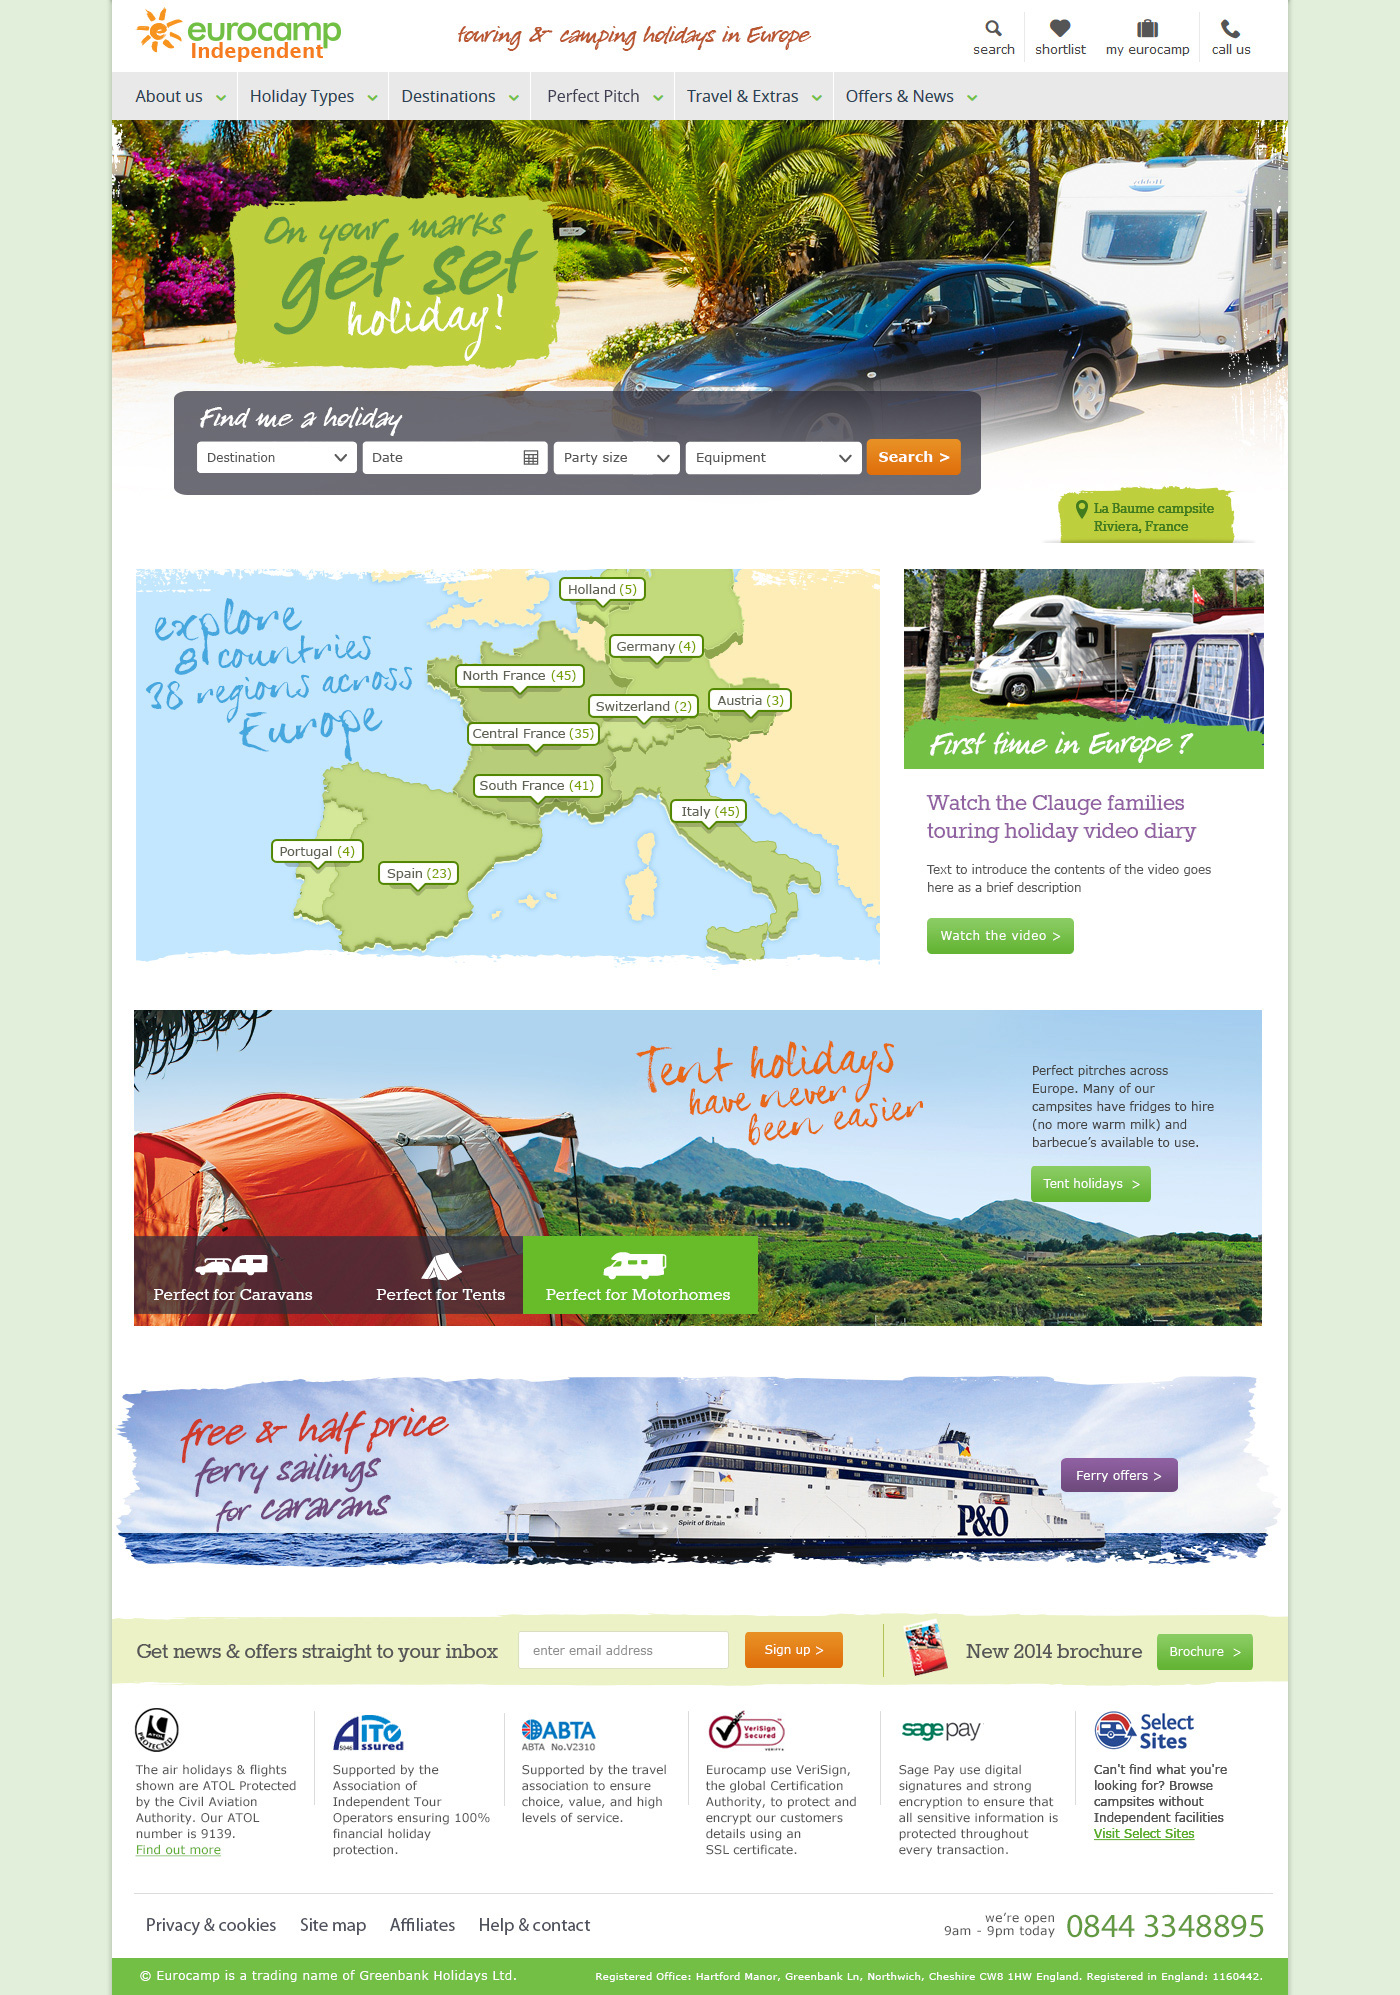 Eurocamp independent website design